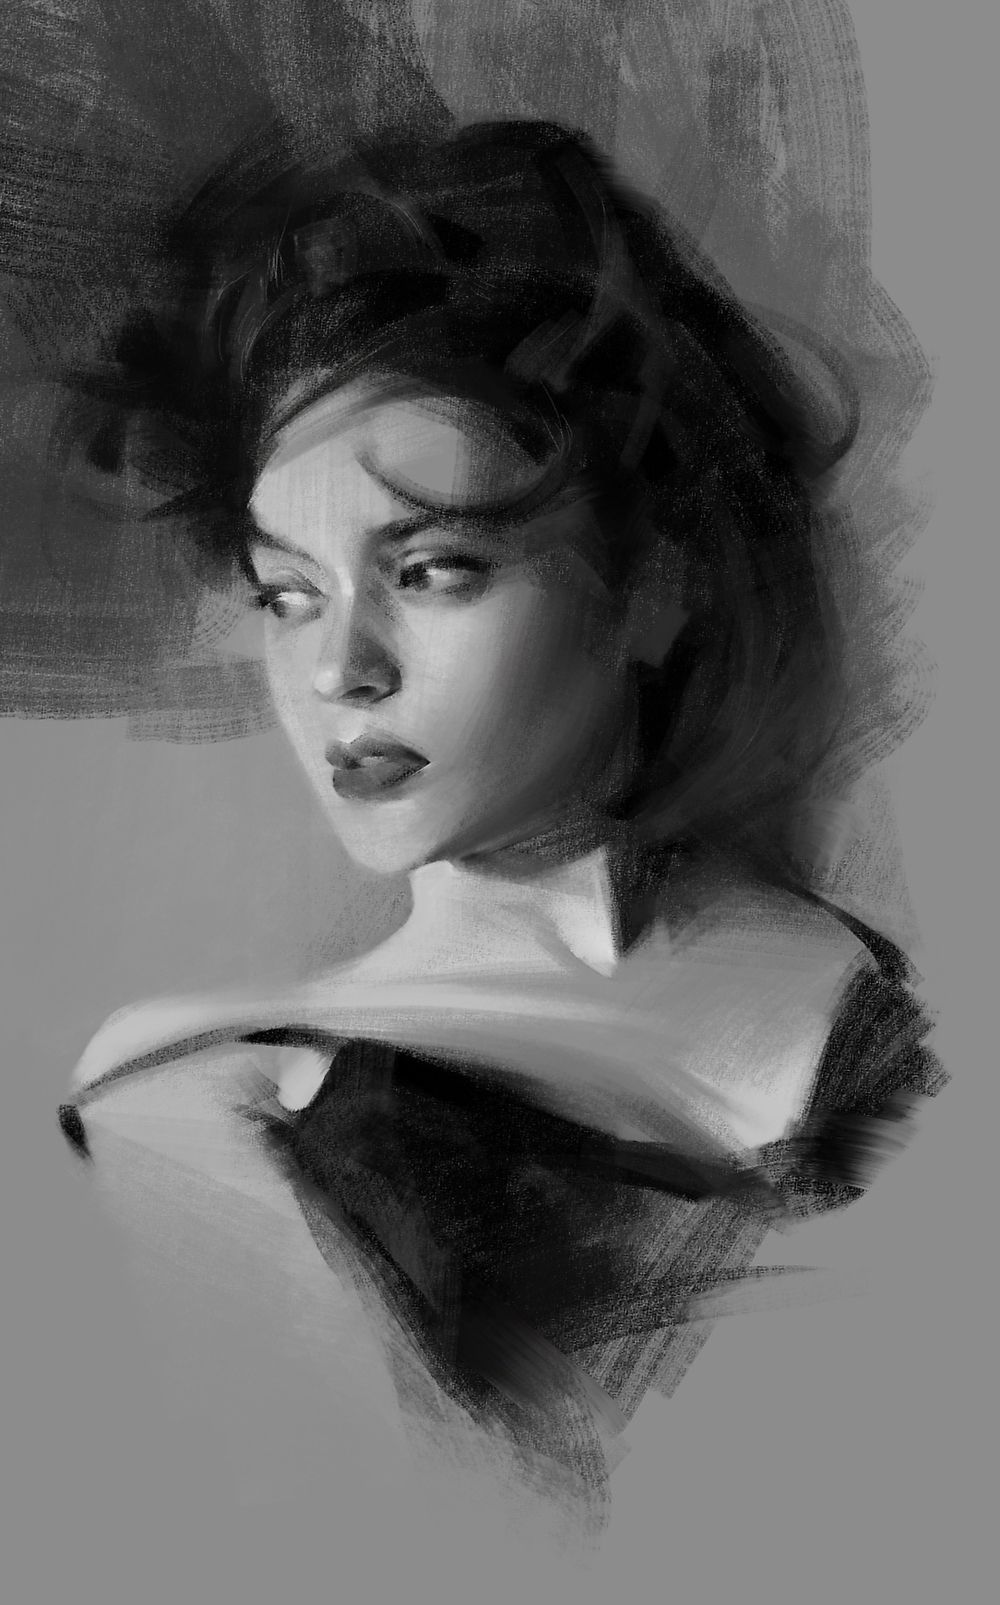 It's just an image of Smart Woman Portrait Drawing